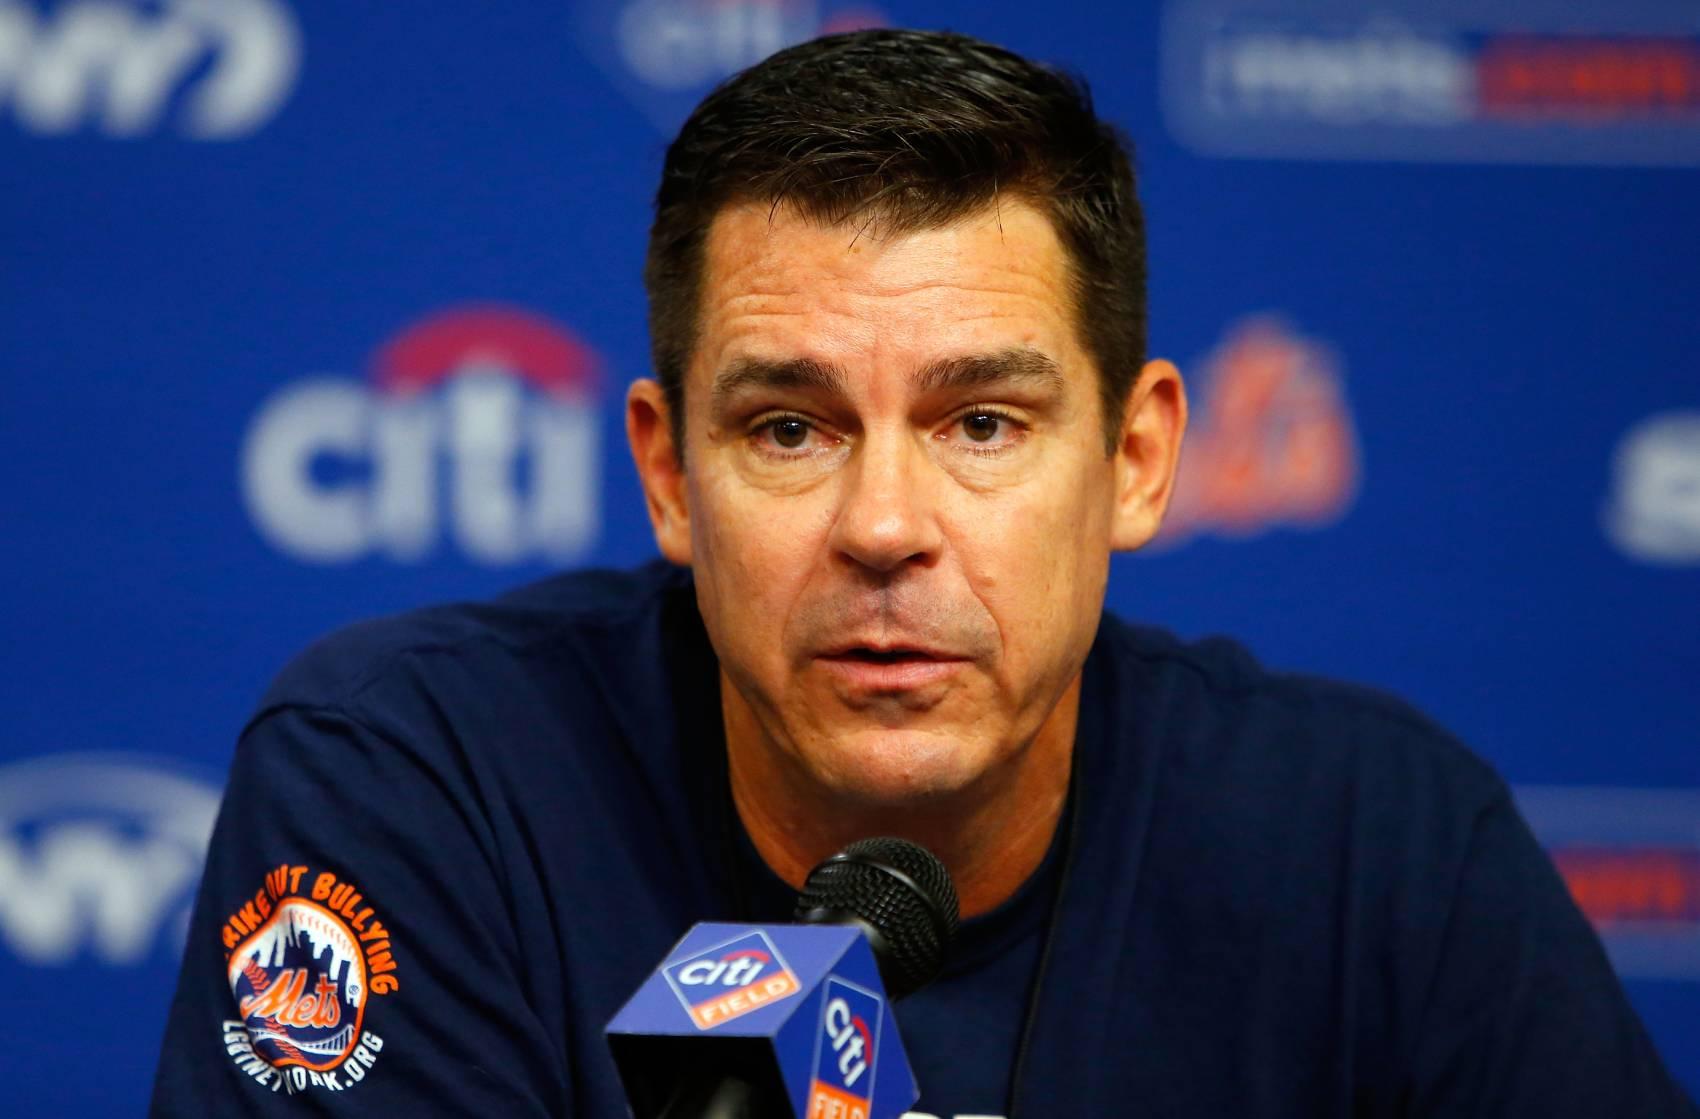 Former MLB outfielder Billy Bean has worked with the league on inclusion. Bean came out as gay after he retired.